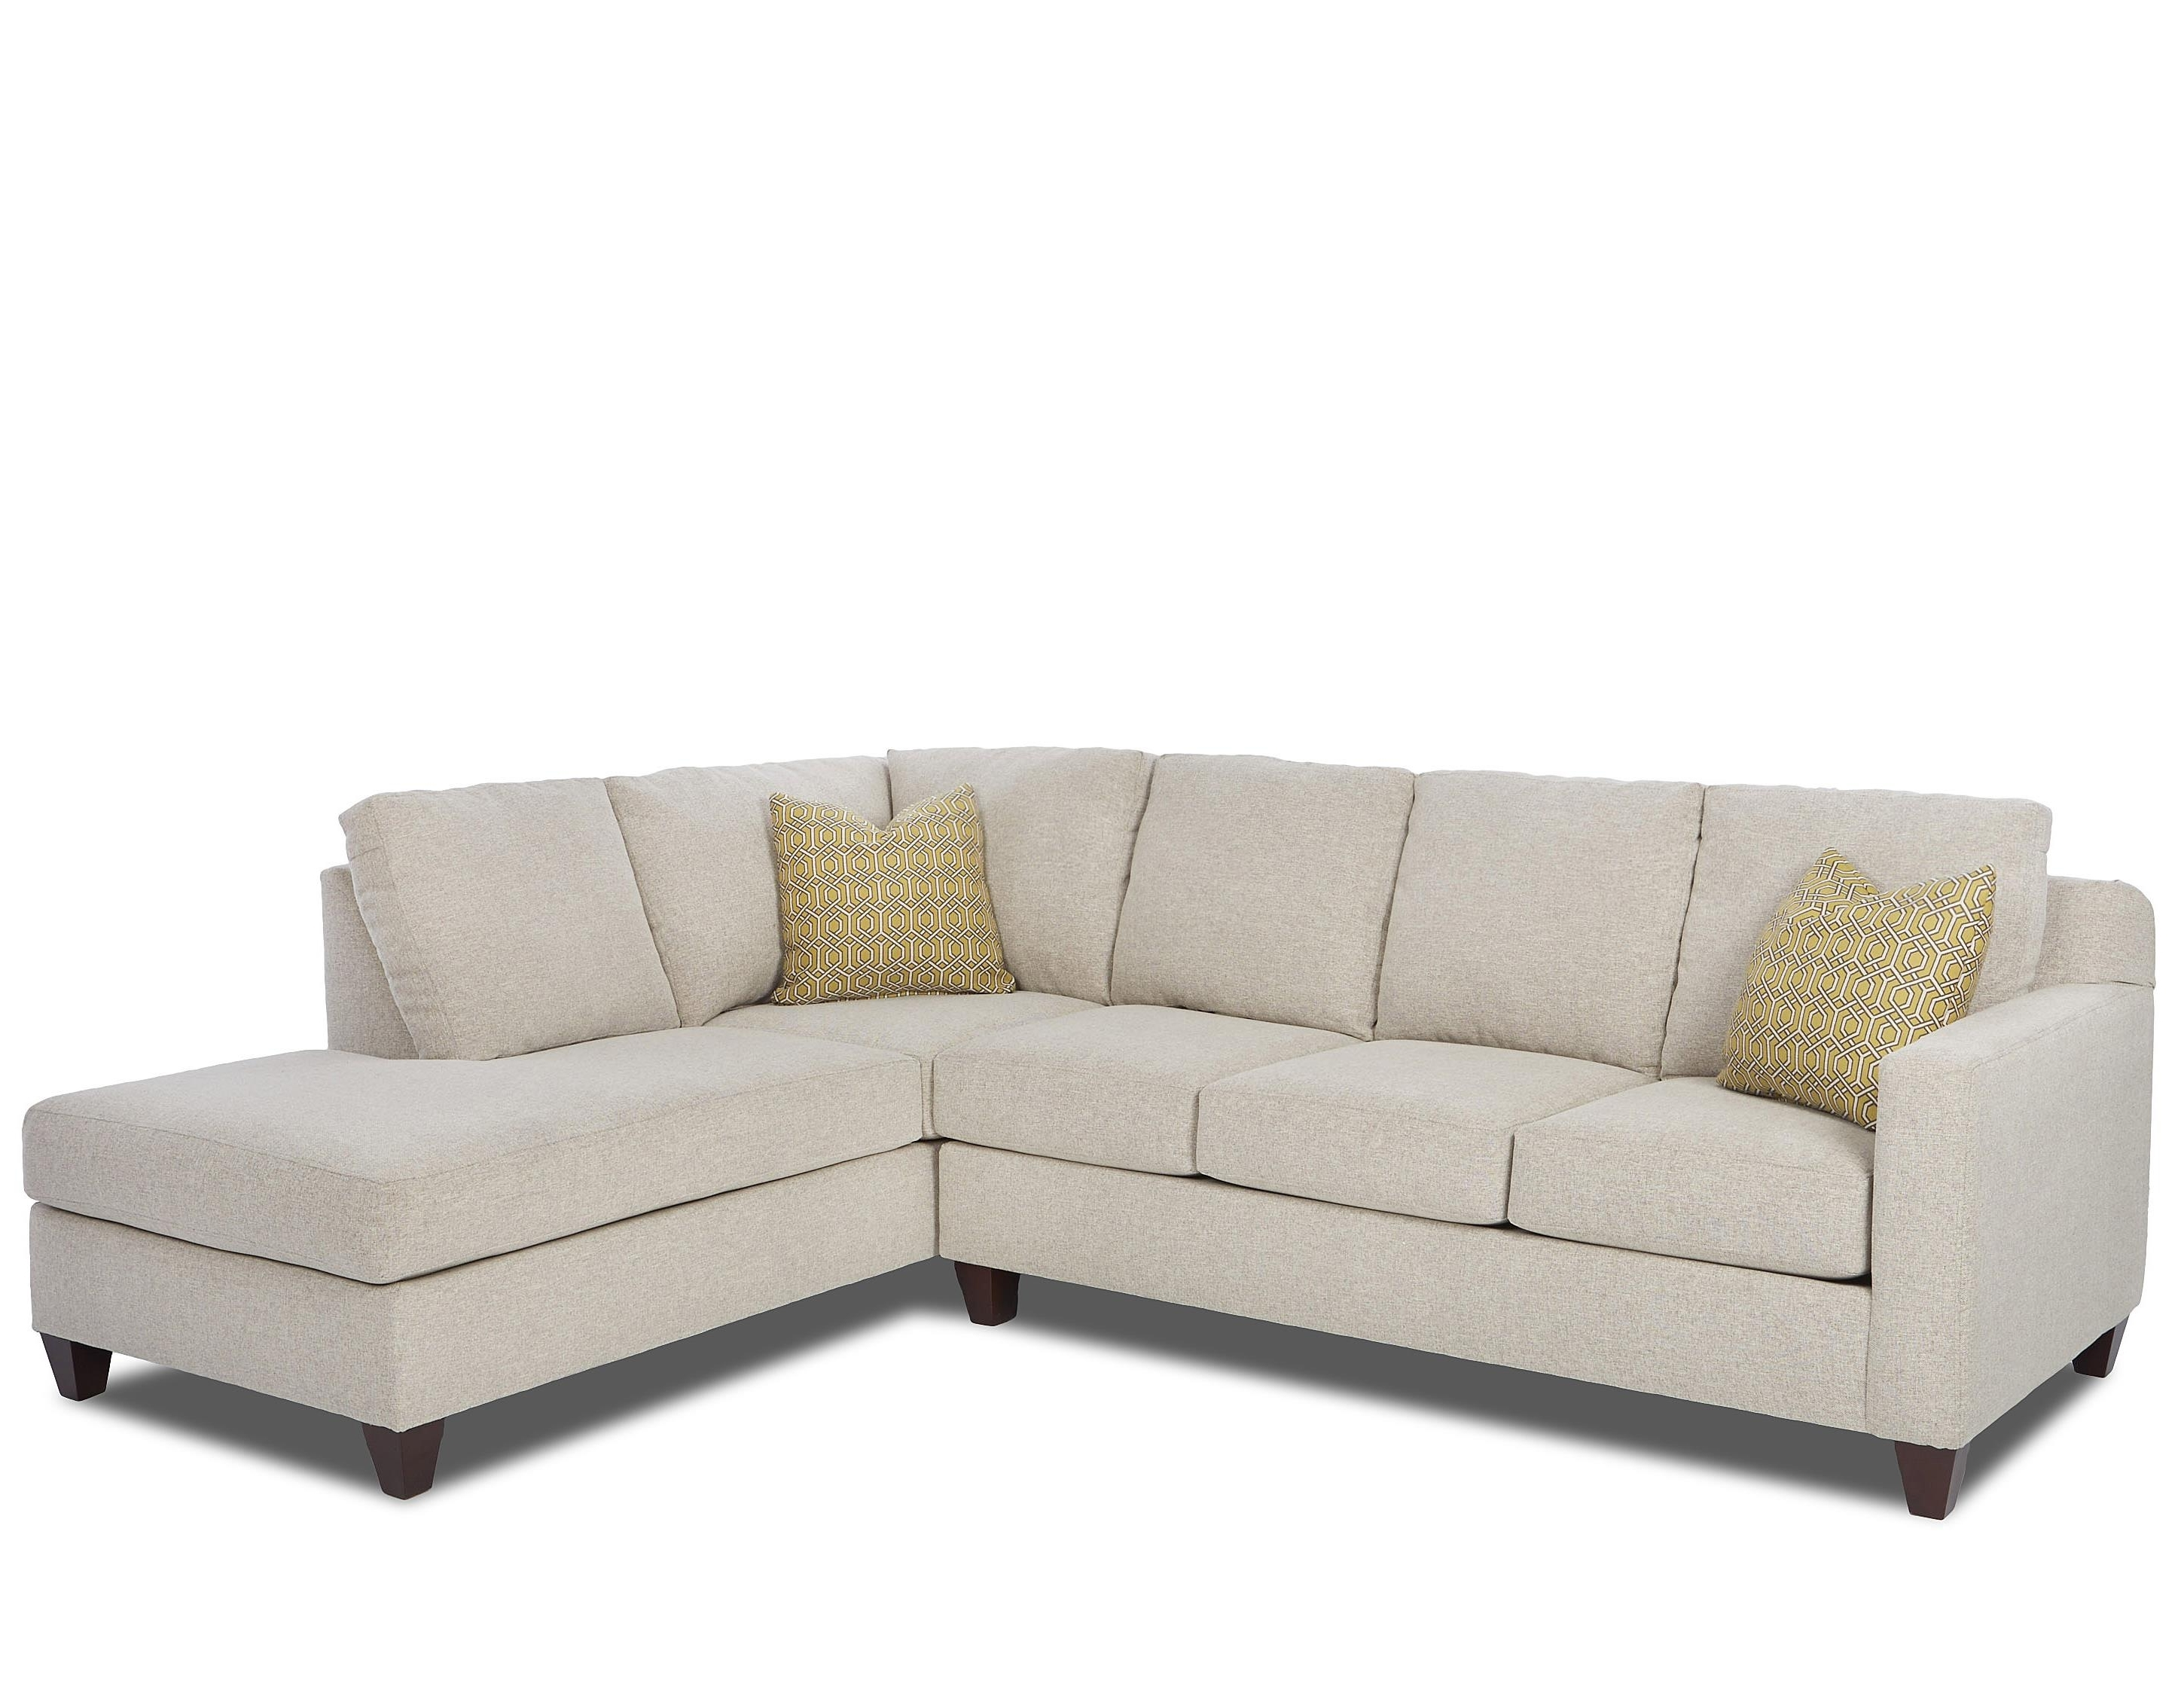 Contemporary 2 Piece Sectional With Right Arm Facing Sofa Chaise For Well Liked Cream Sectionals With Chaise (View 2 of 15)